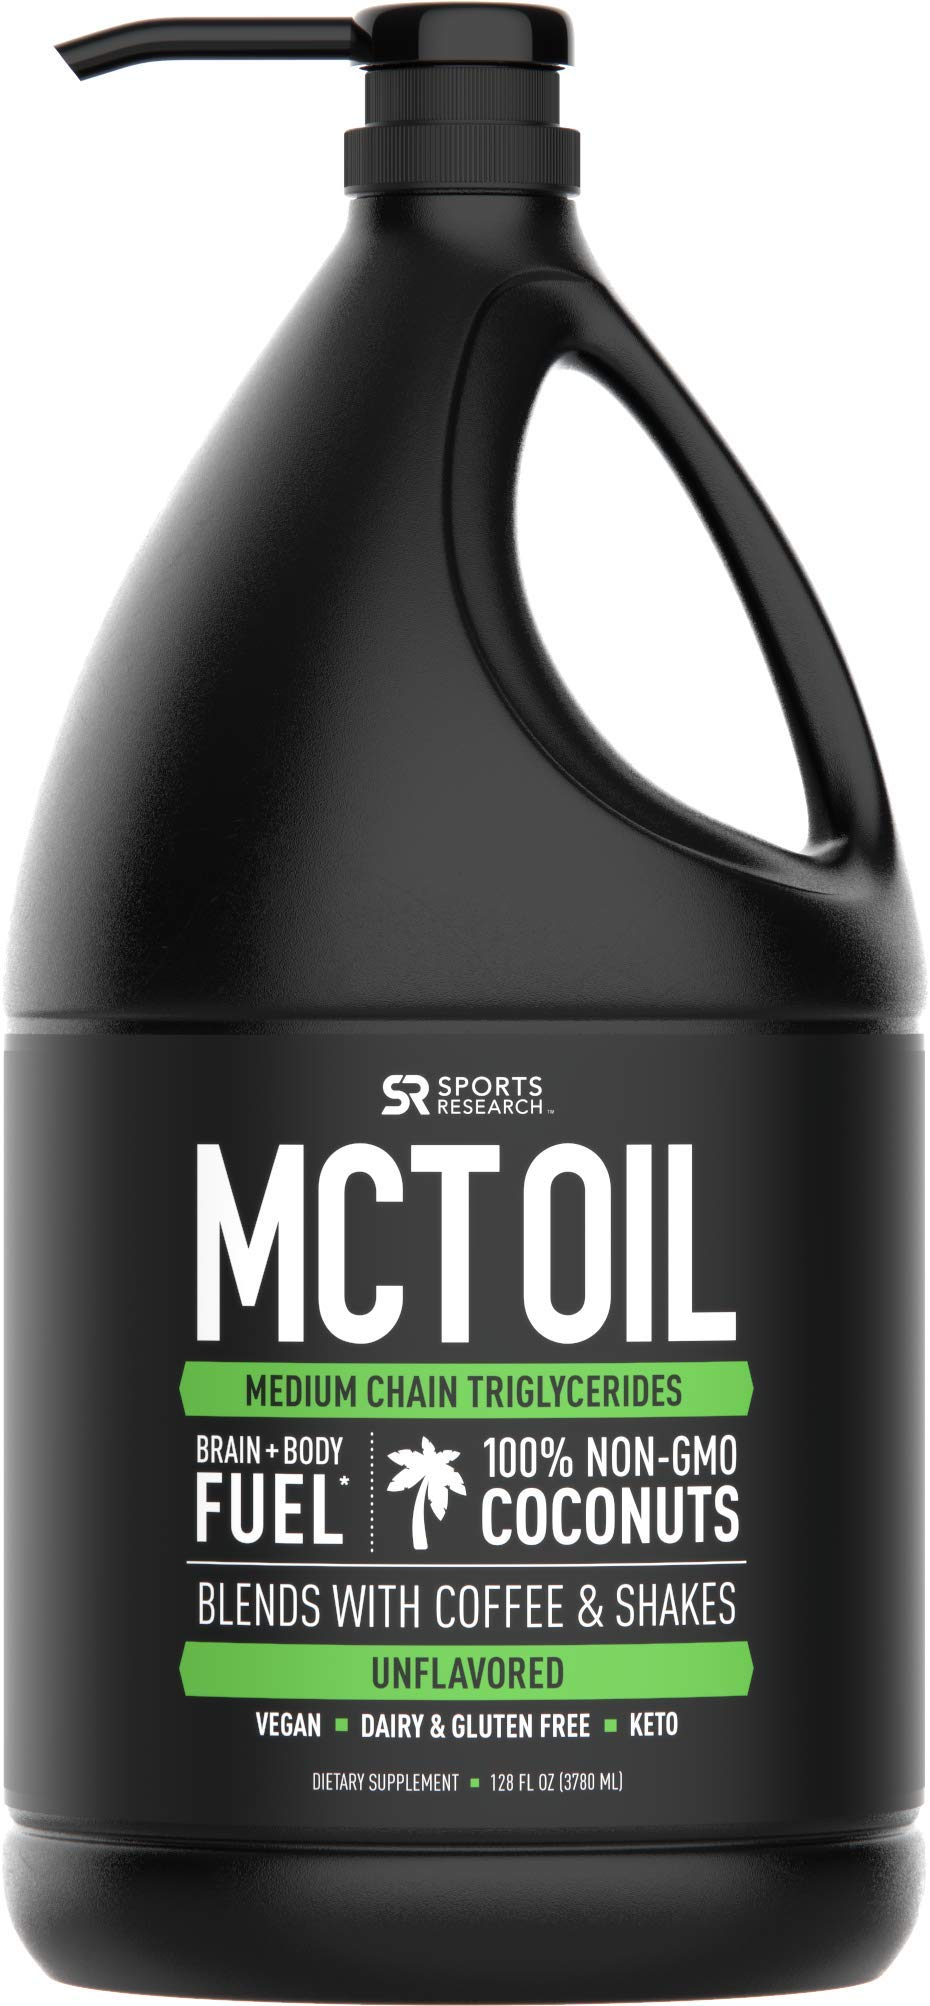 Premium MCT Oil Derived only from Non-GMO Coconuts - 128oz 'XL' Bottle with Pump | Great for Keto Coffee, Tea and Shakes | Vegan Safe, Non-GMO and Gluten Free